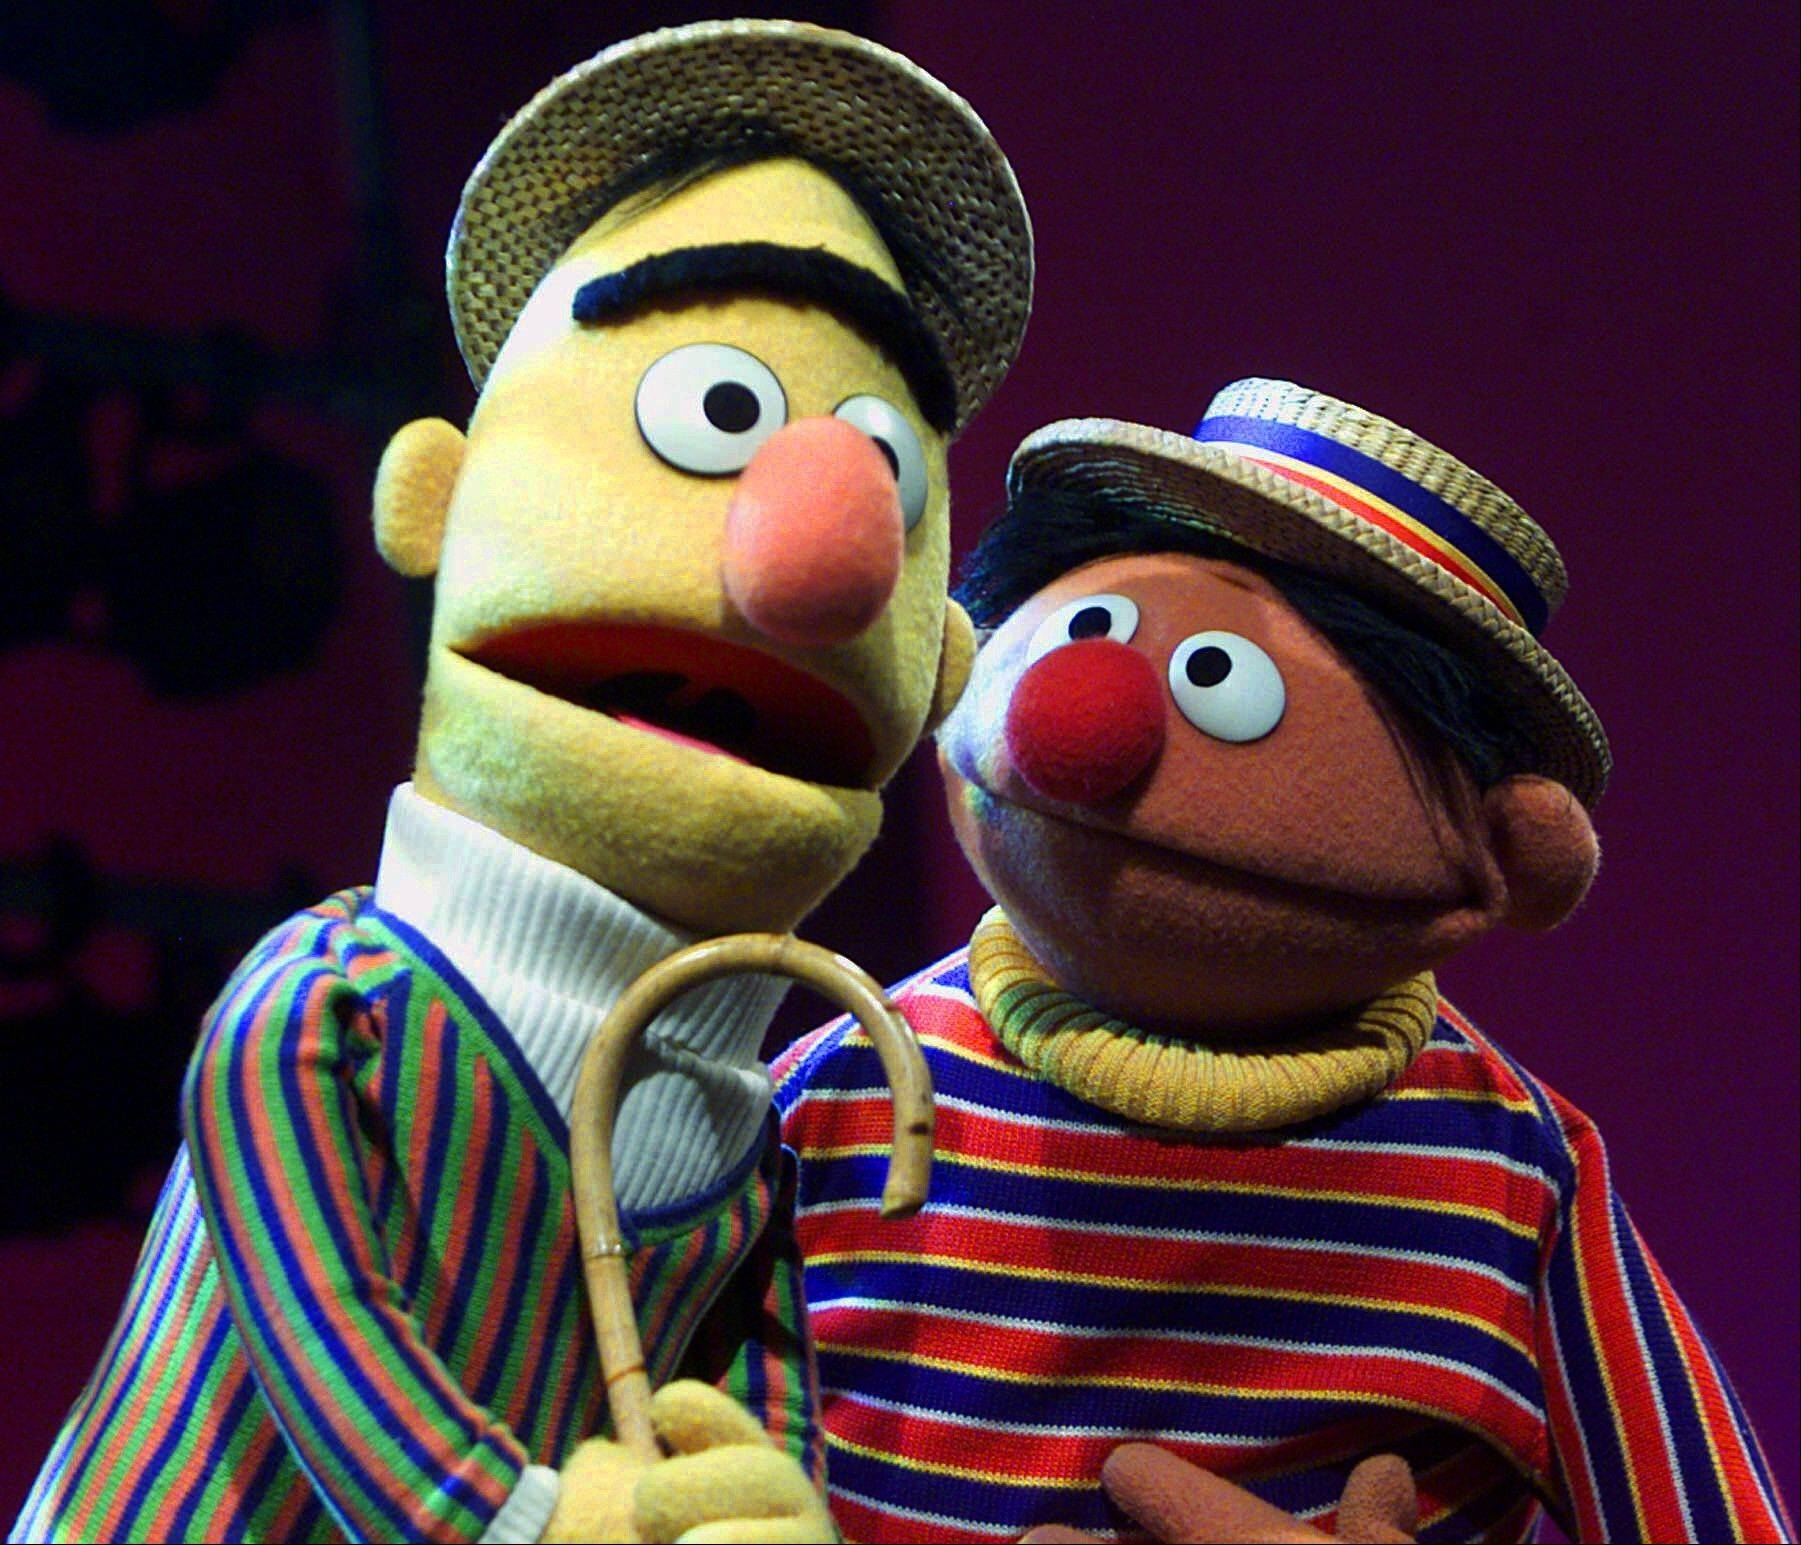 An online petition calling for the nuptials of Muppet flat-mates Bert and Ernie has sparked controversy. Chicago resident Lair Scott, who posted the petition, is seeking matrimony for the �Sesame Street� chums as a way to make gay and lesbian kids who watch the show feel better about themselves.